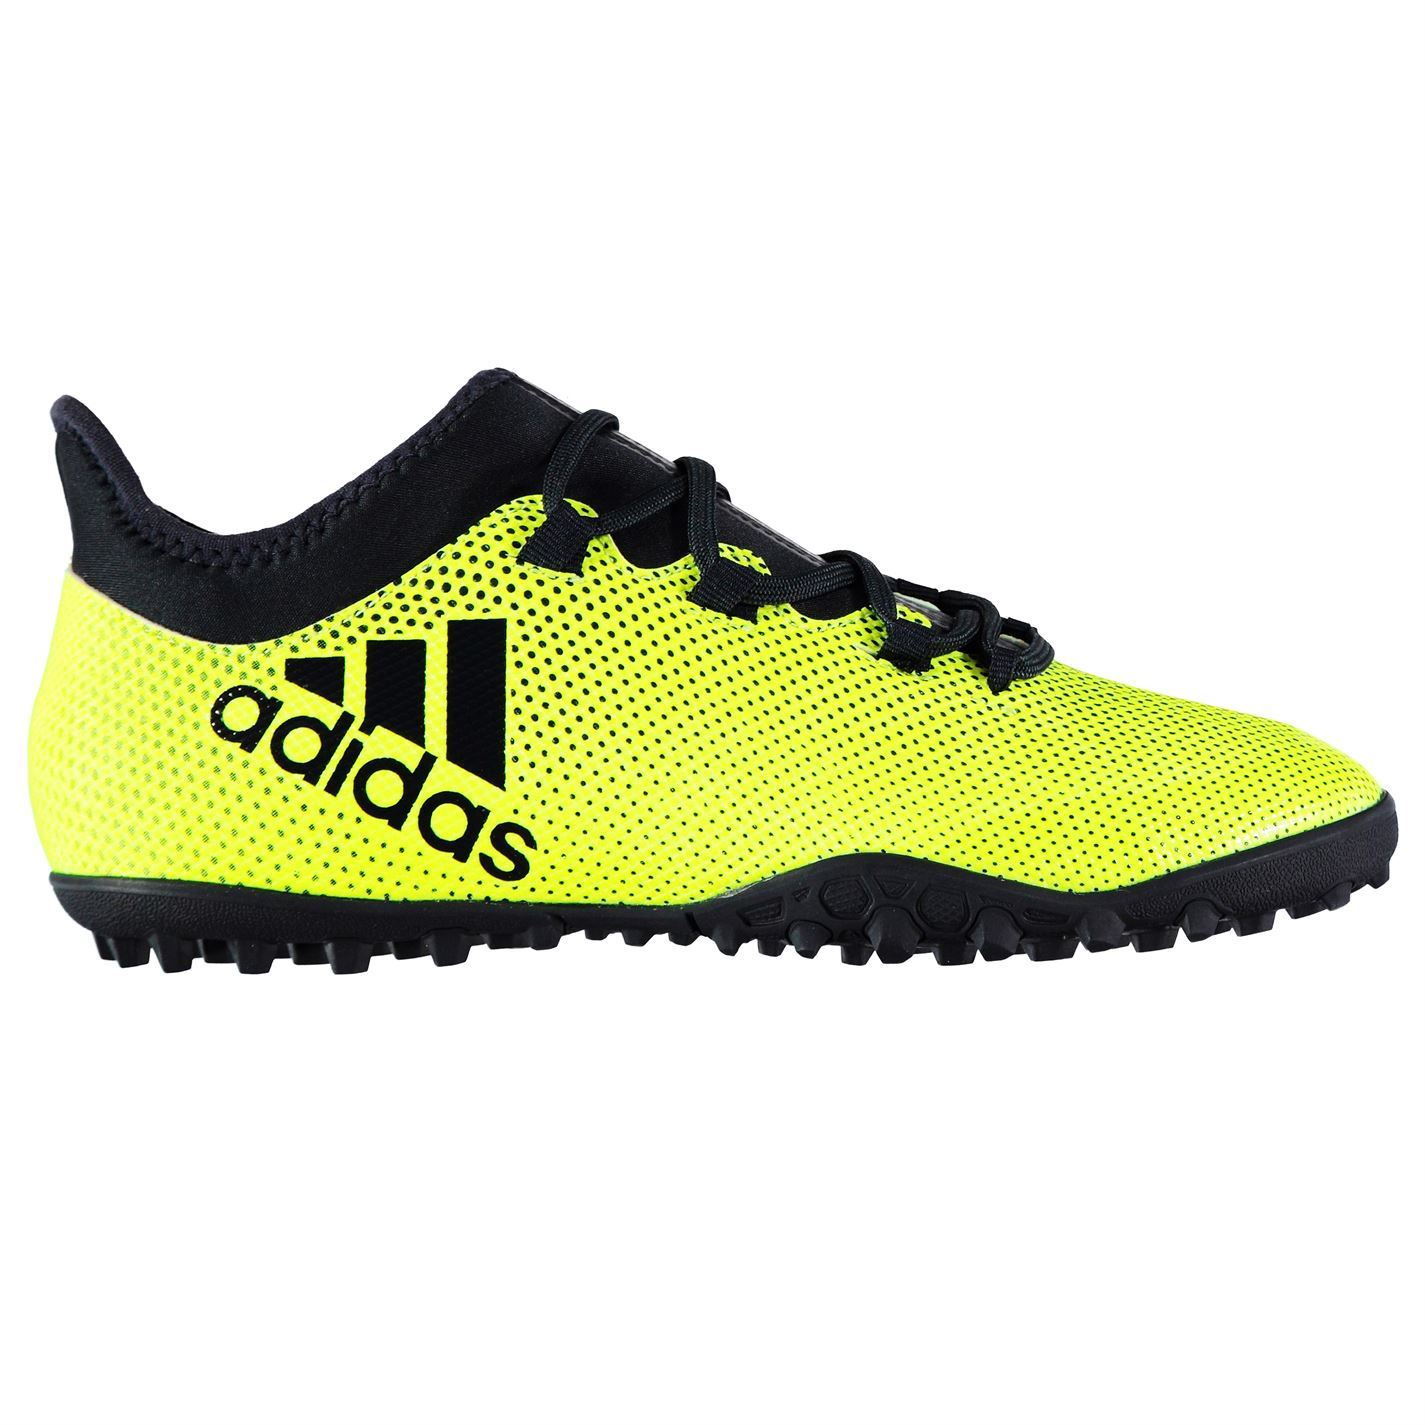 sale retailer 15646 4f748 Details about adidas X Tango 17.3 Astro Turf Football Trainers Mens  Yellow/Ink Soccer Shoes